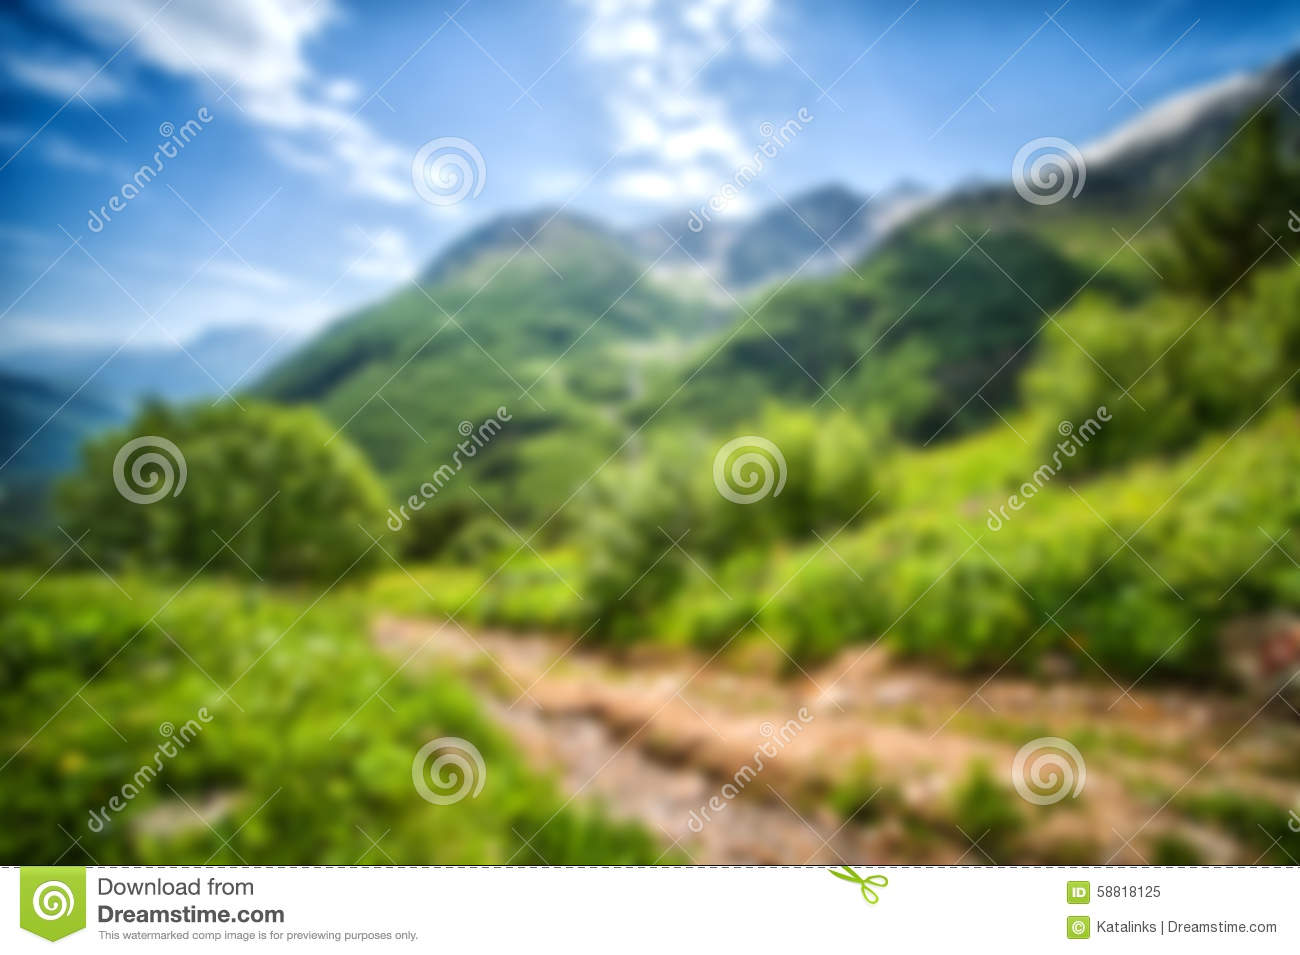 Top Wallpaper Mountain Blurry - abstract-blur-background-mountains-sky-path-near-meadow-58818125  You Should Have_187870.jpg